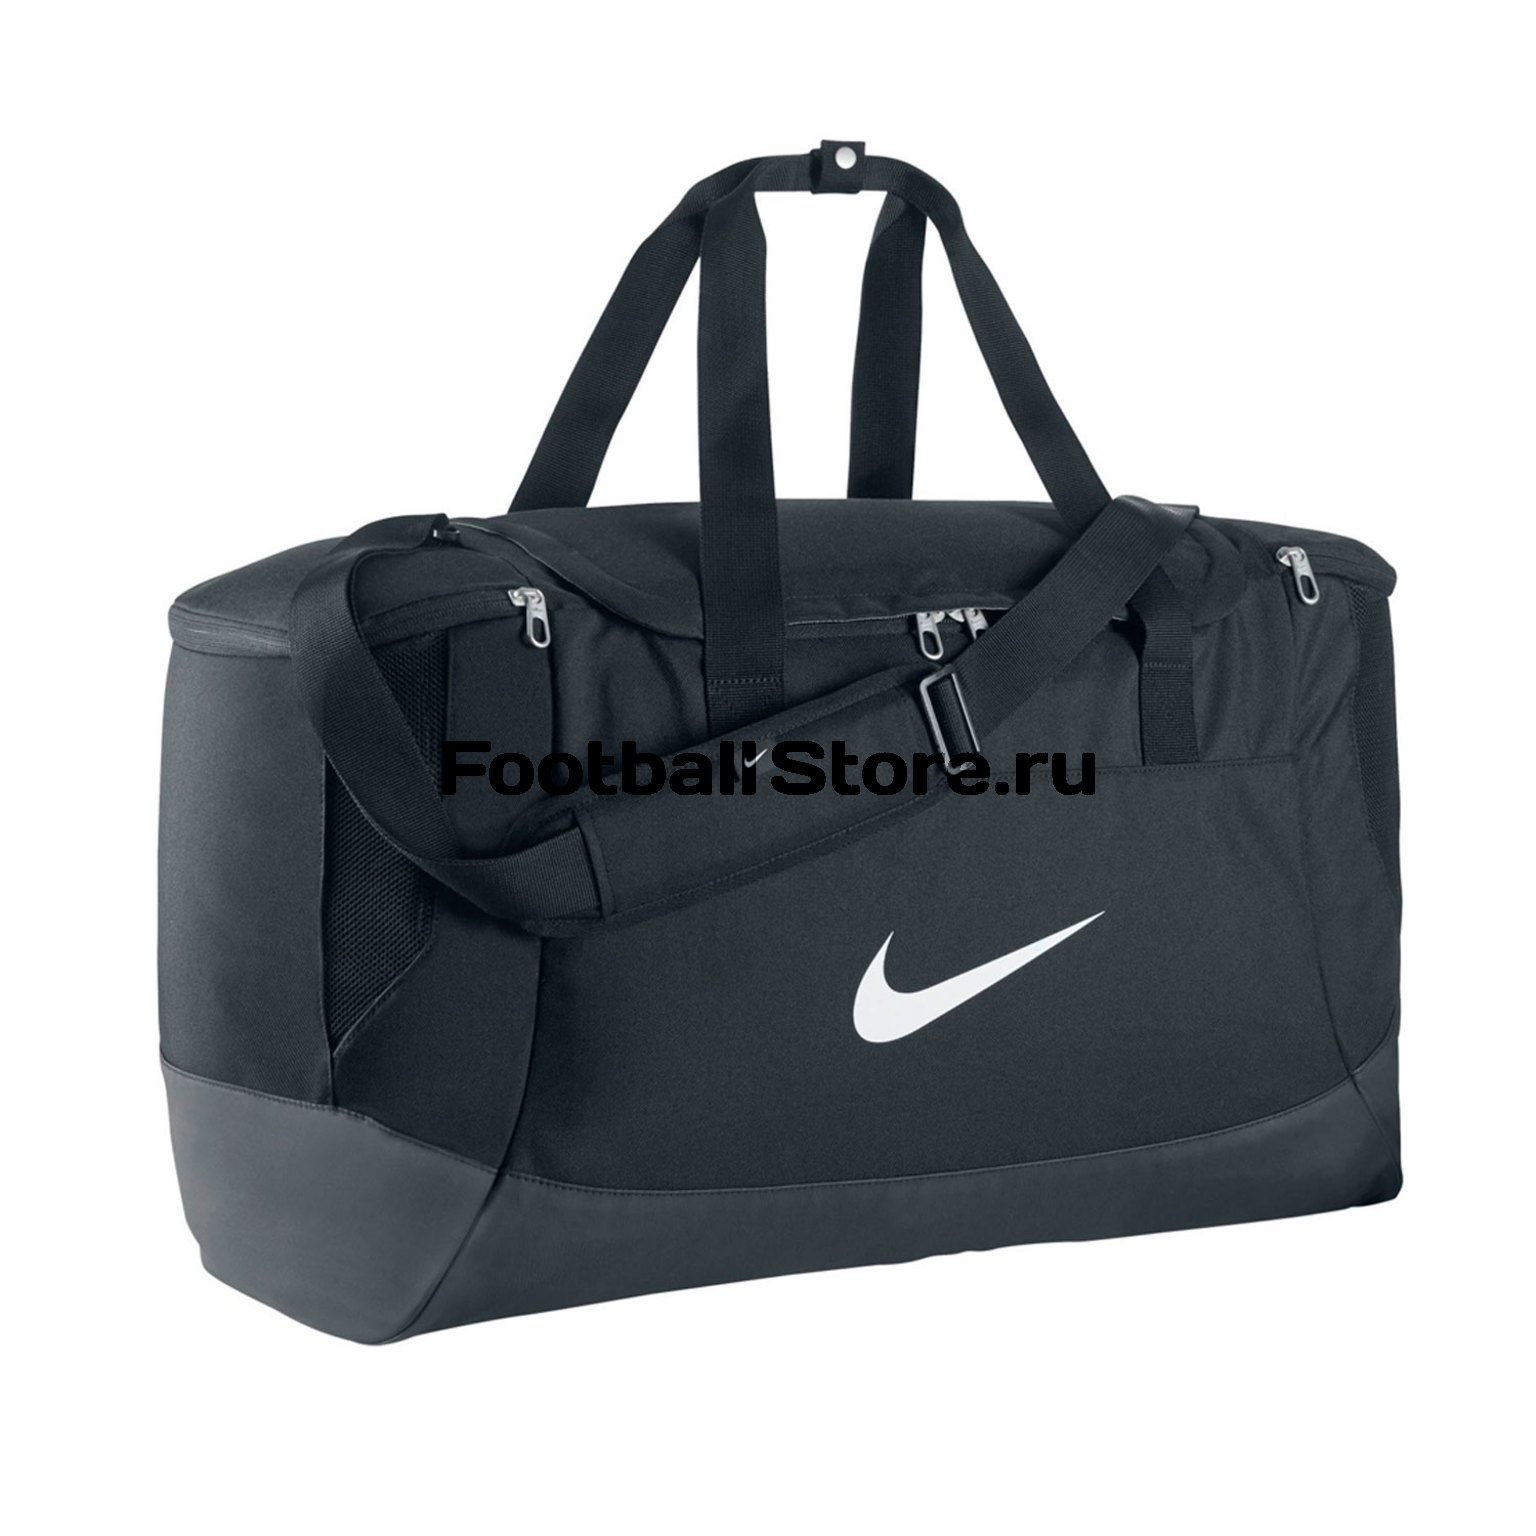 Сумки/Рюкзаки Nike Сумка Nike Club Team Swoosh Duff L BA5192-010 nike nike club team swoosh backpack